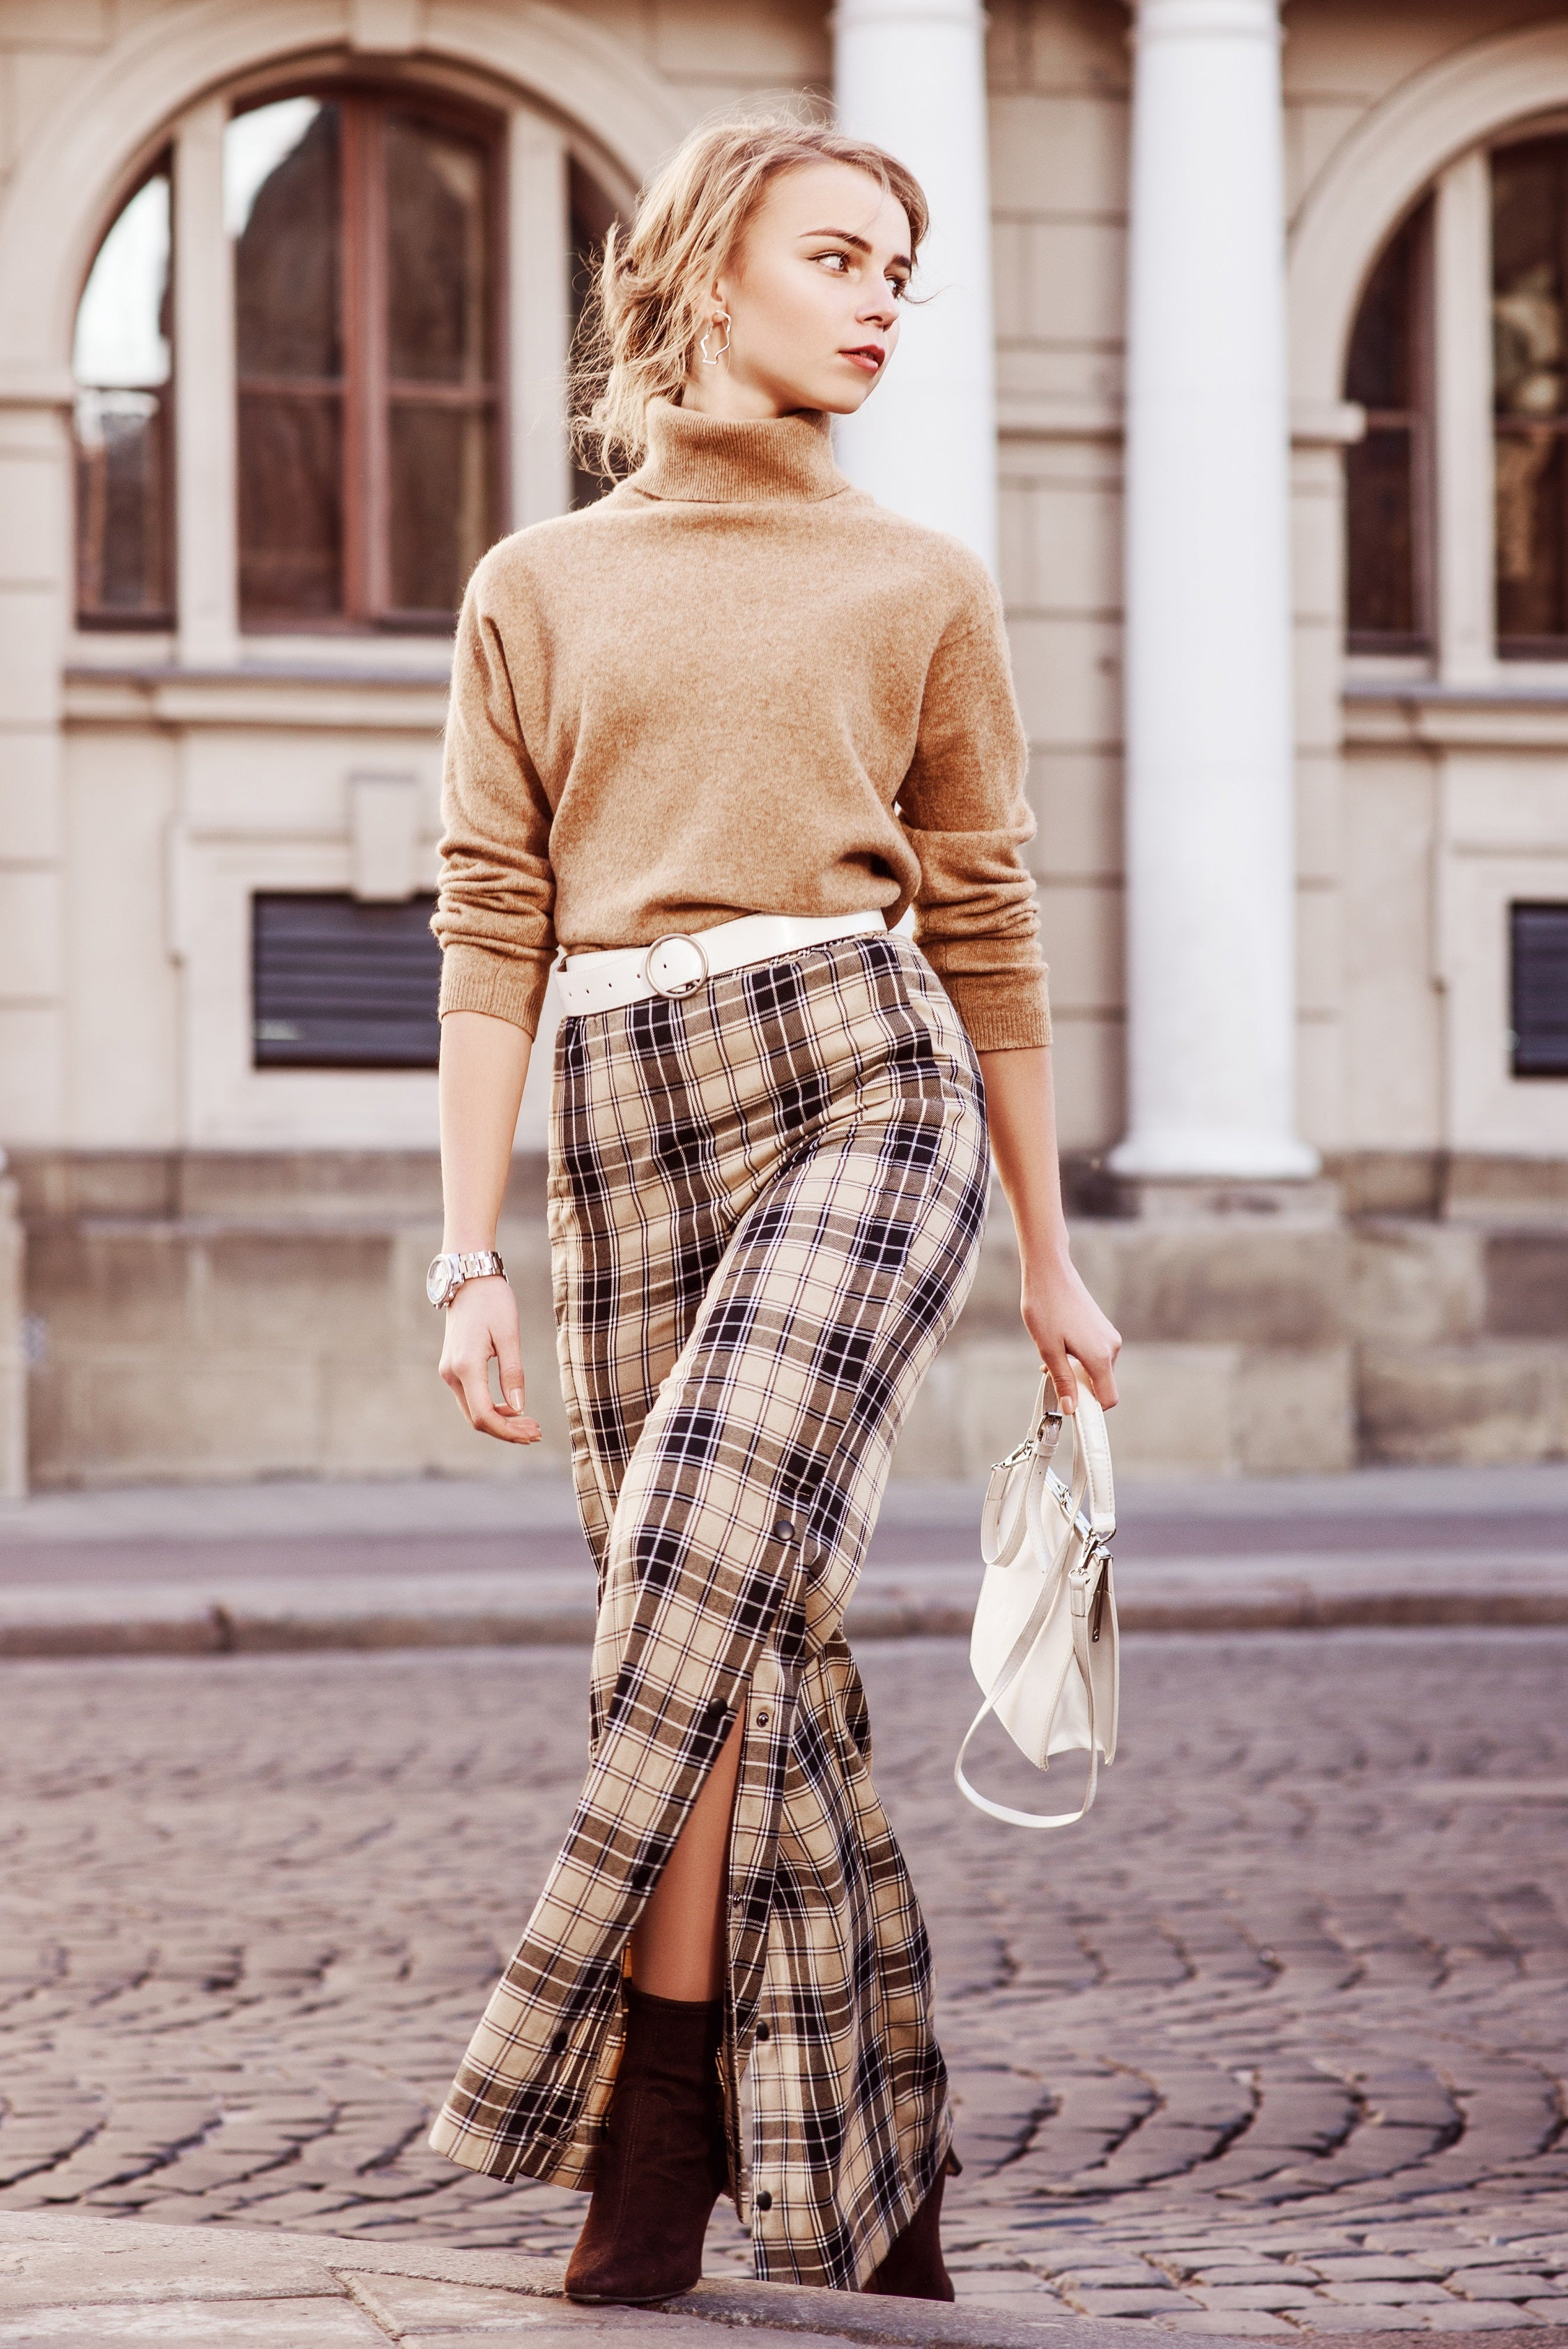 All Neutral Look with Plaid Pattern